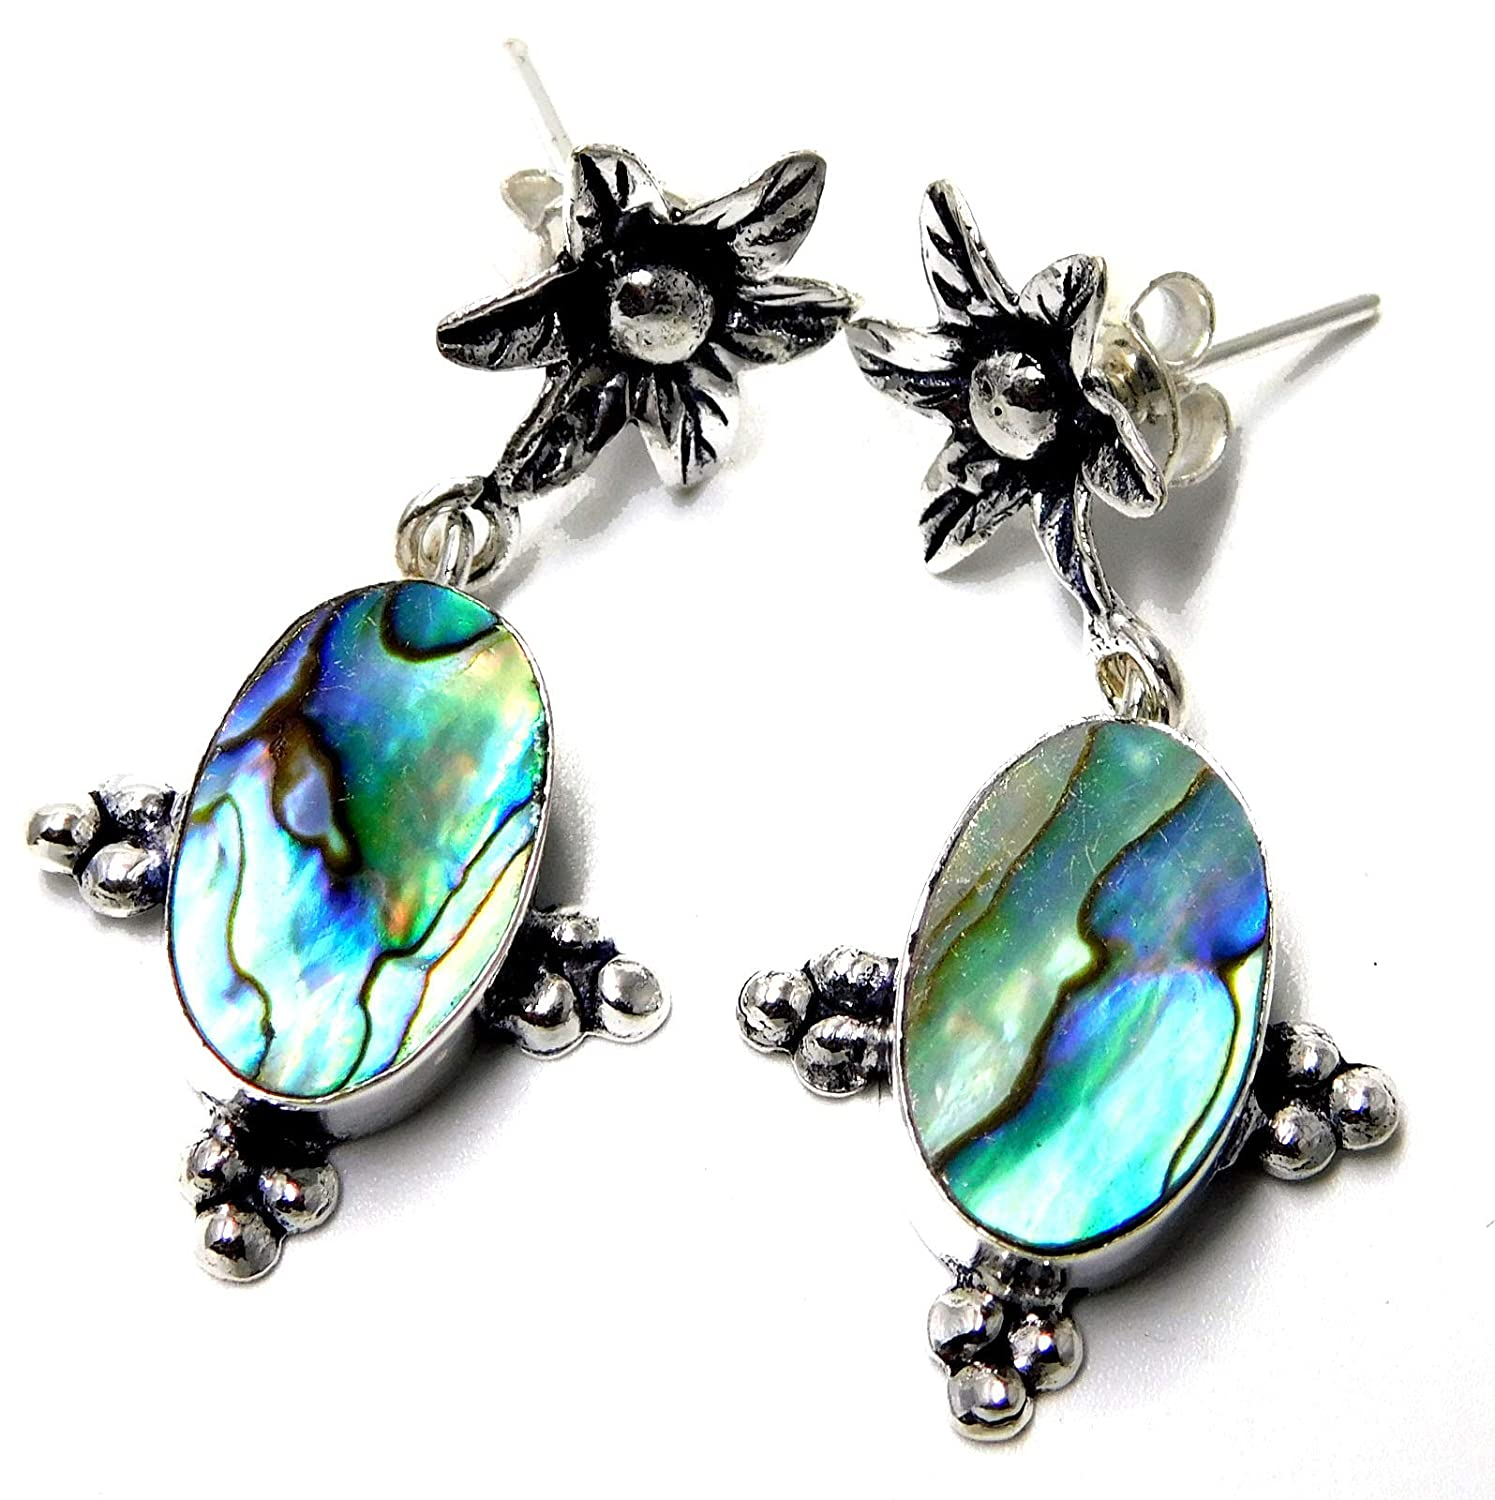 Abalone Shell,Flower Jewelry 925 Sterling Silver Plated Stud Earrings 7 Gm